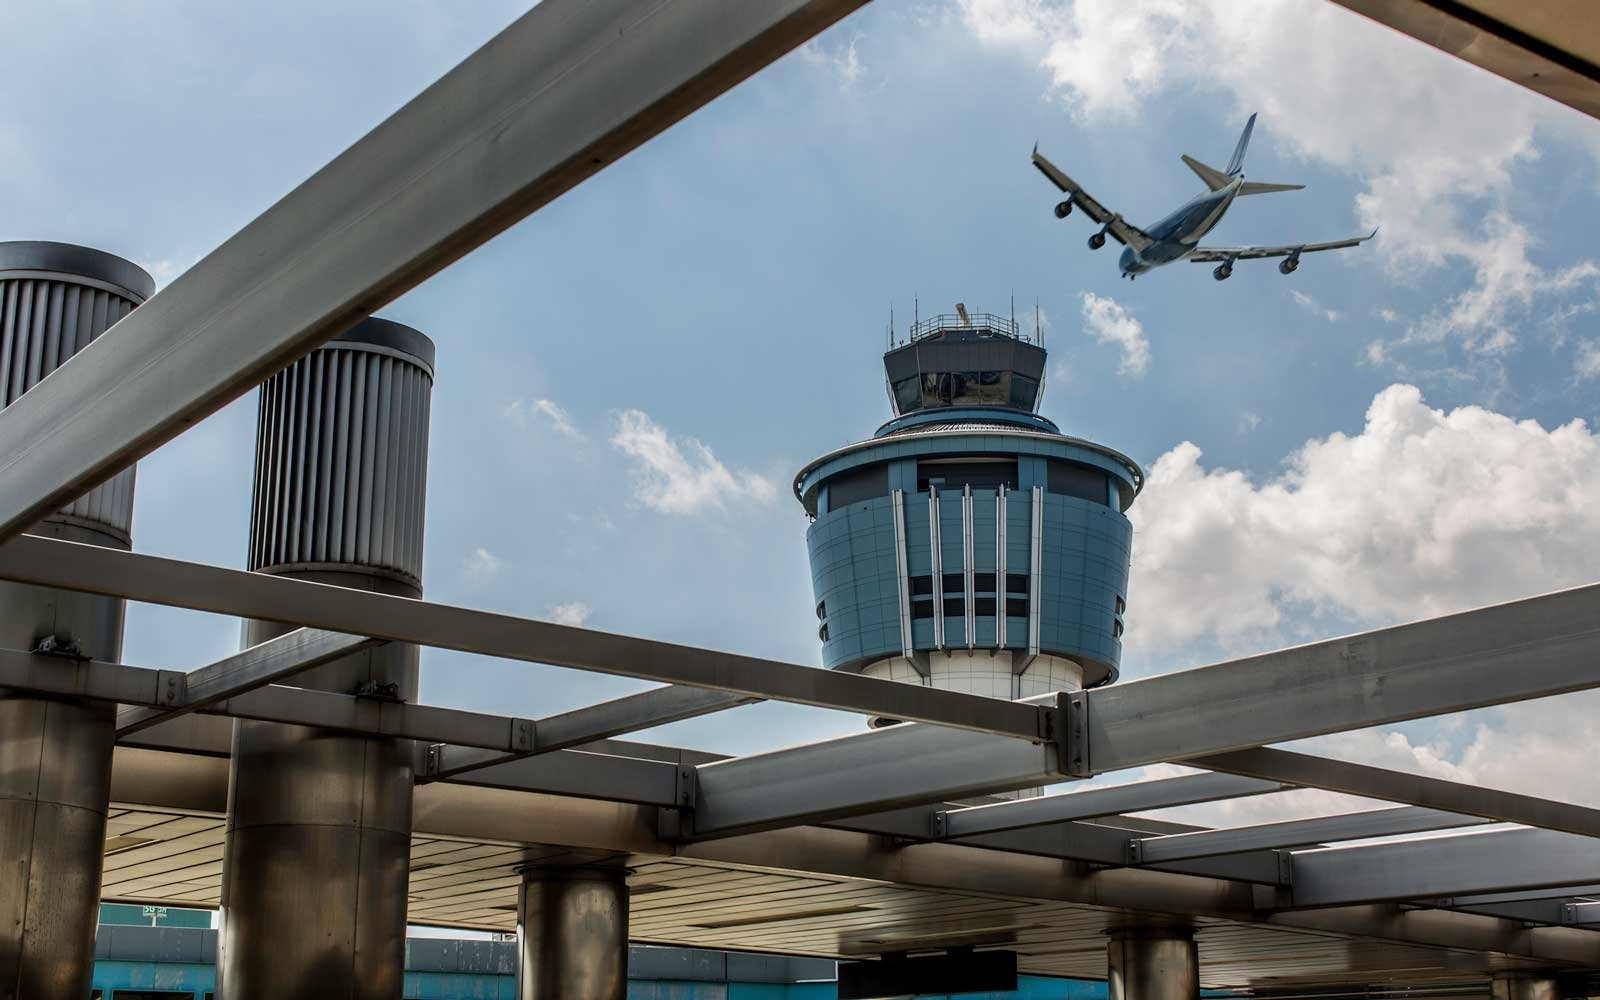 Laguardia Airport Air Traffic Control Tower, New York